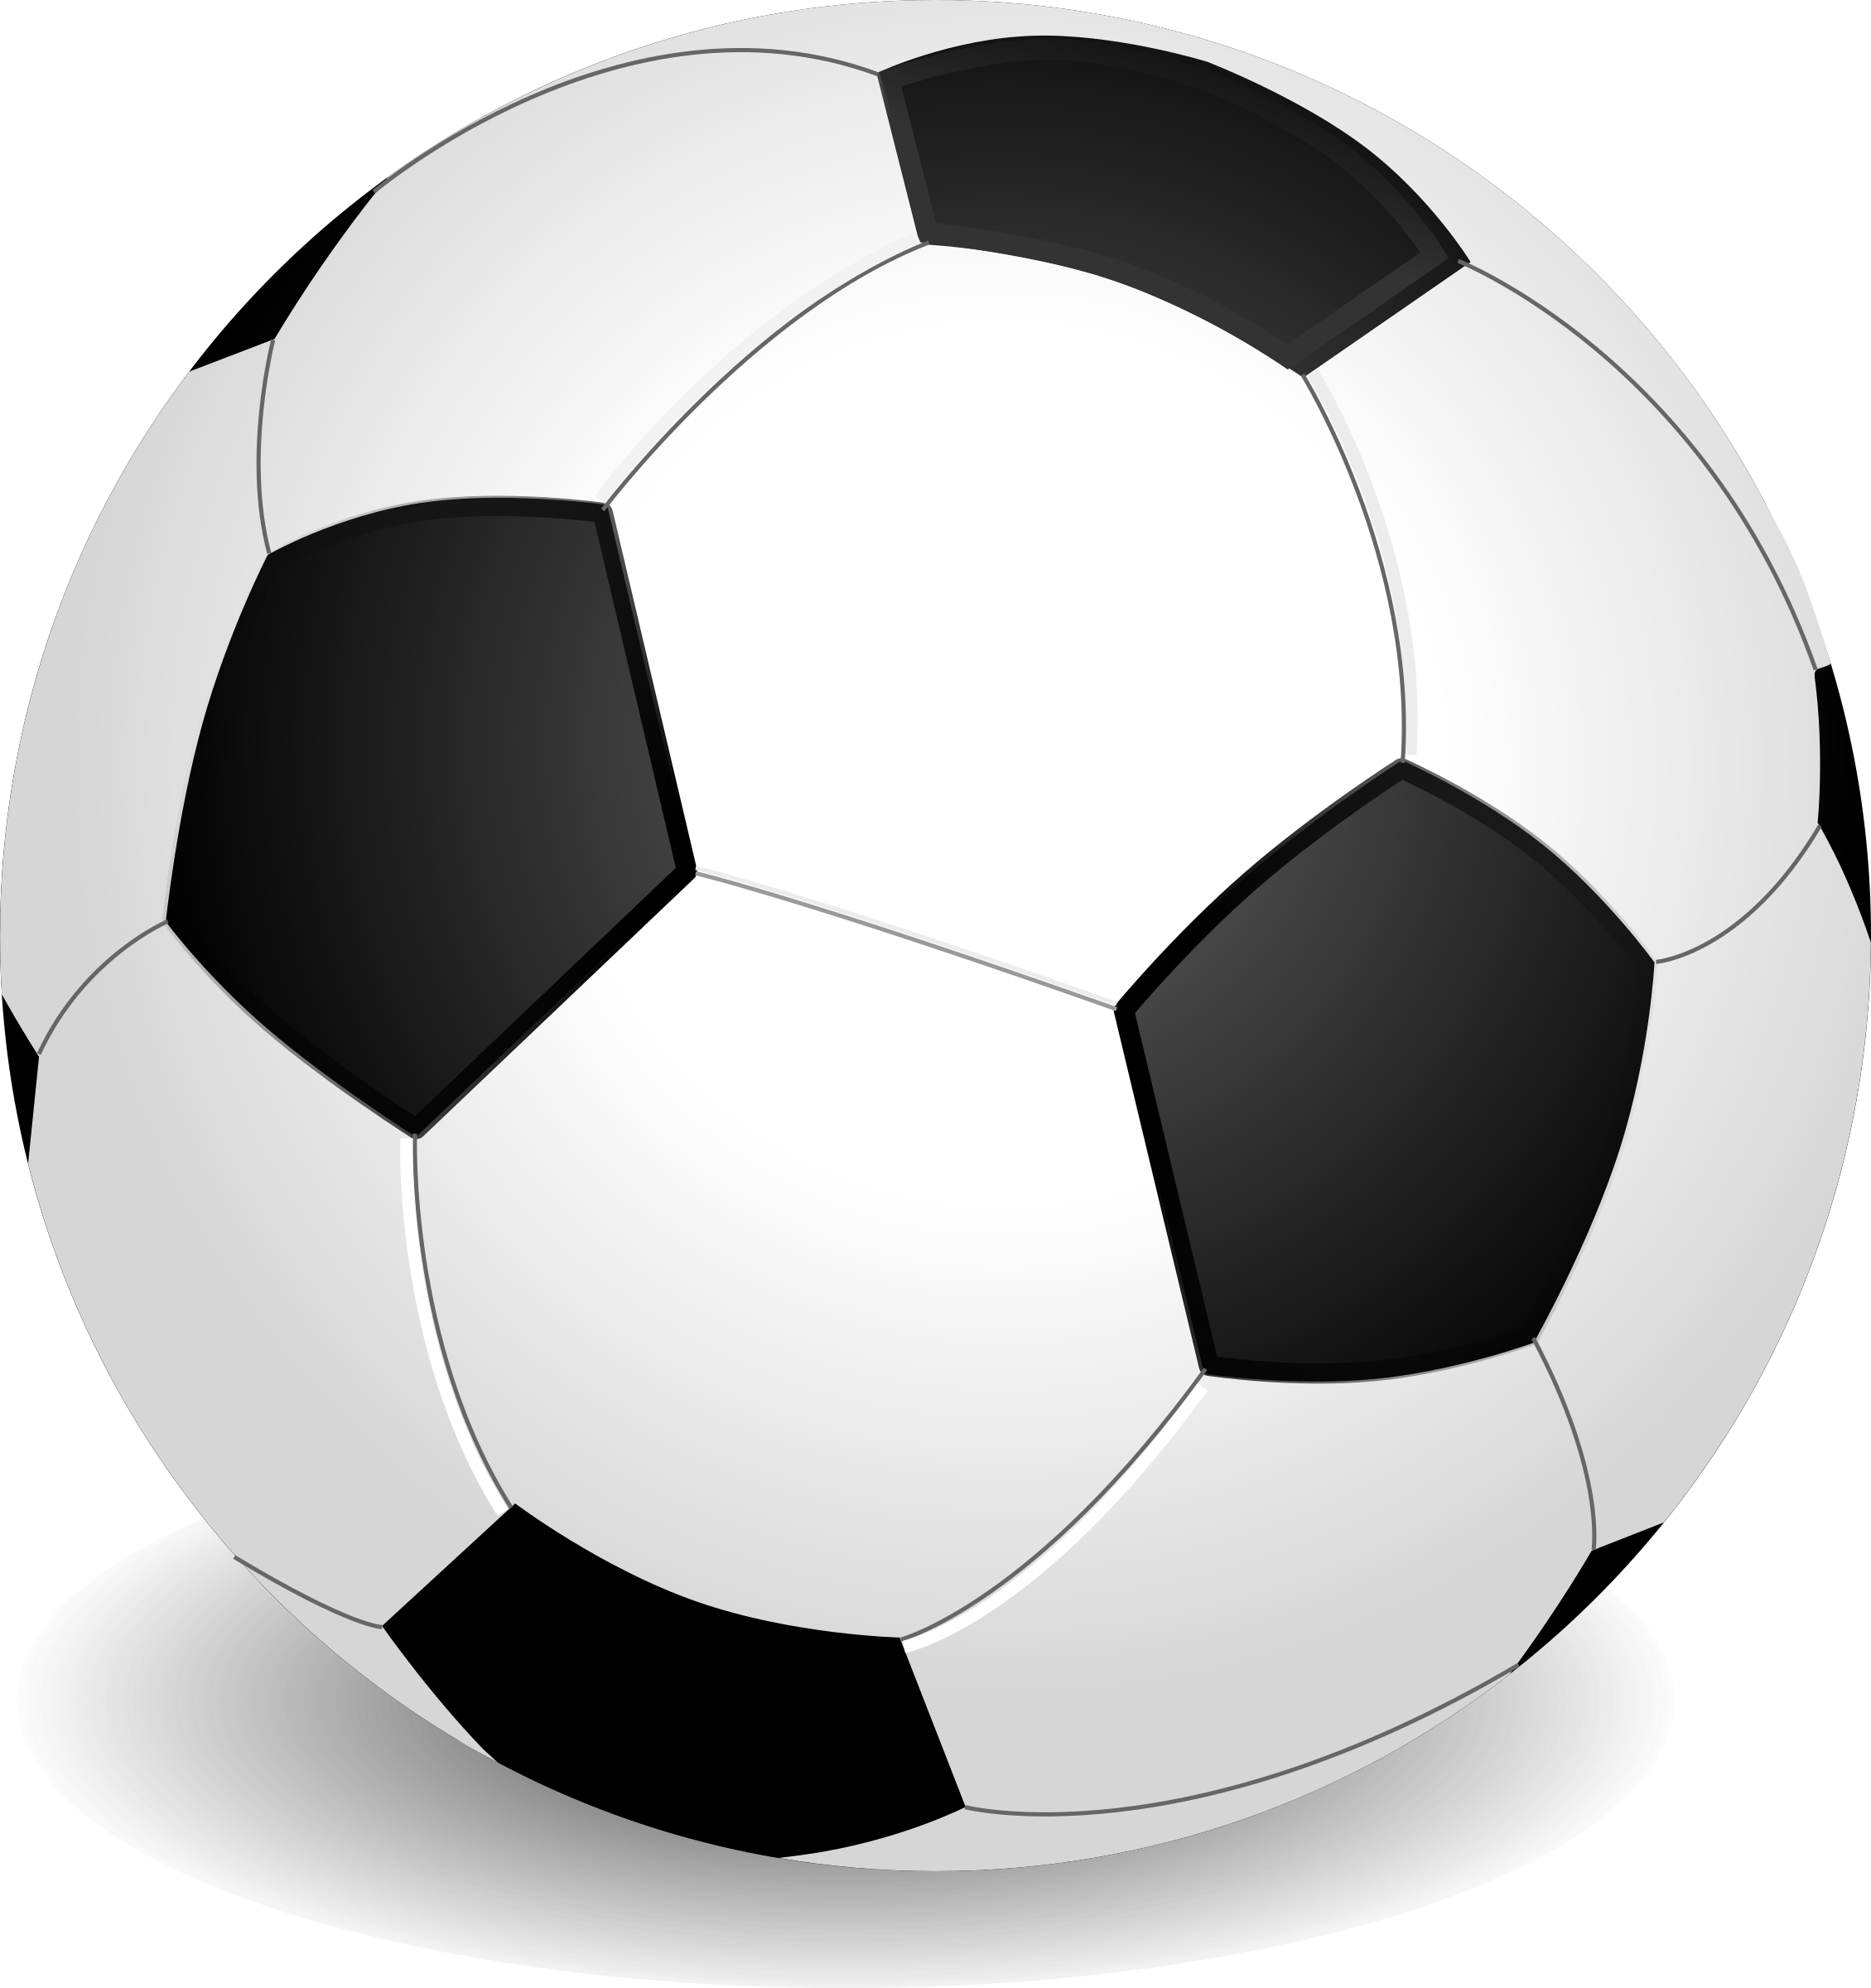 Peanuts clipart football.  collection of simple